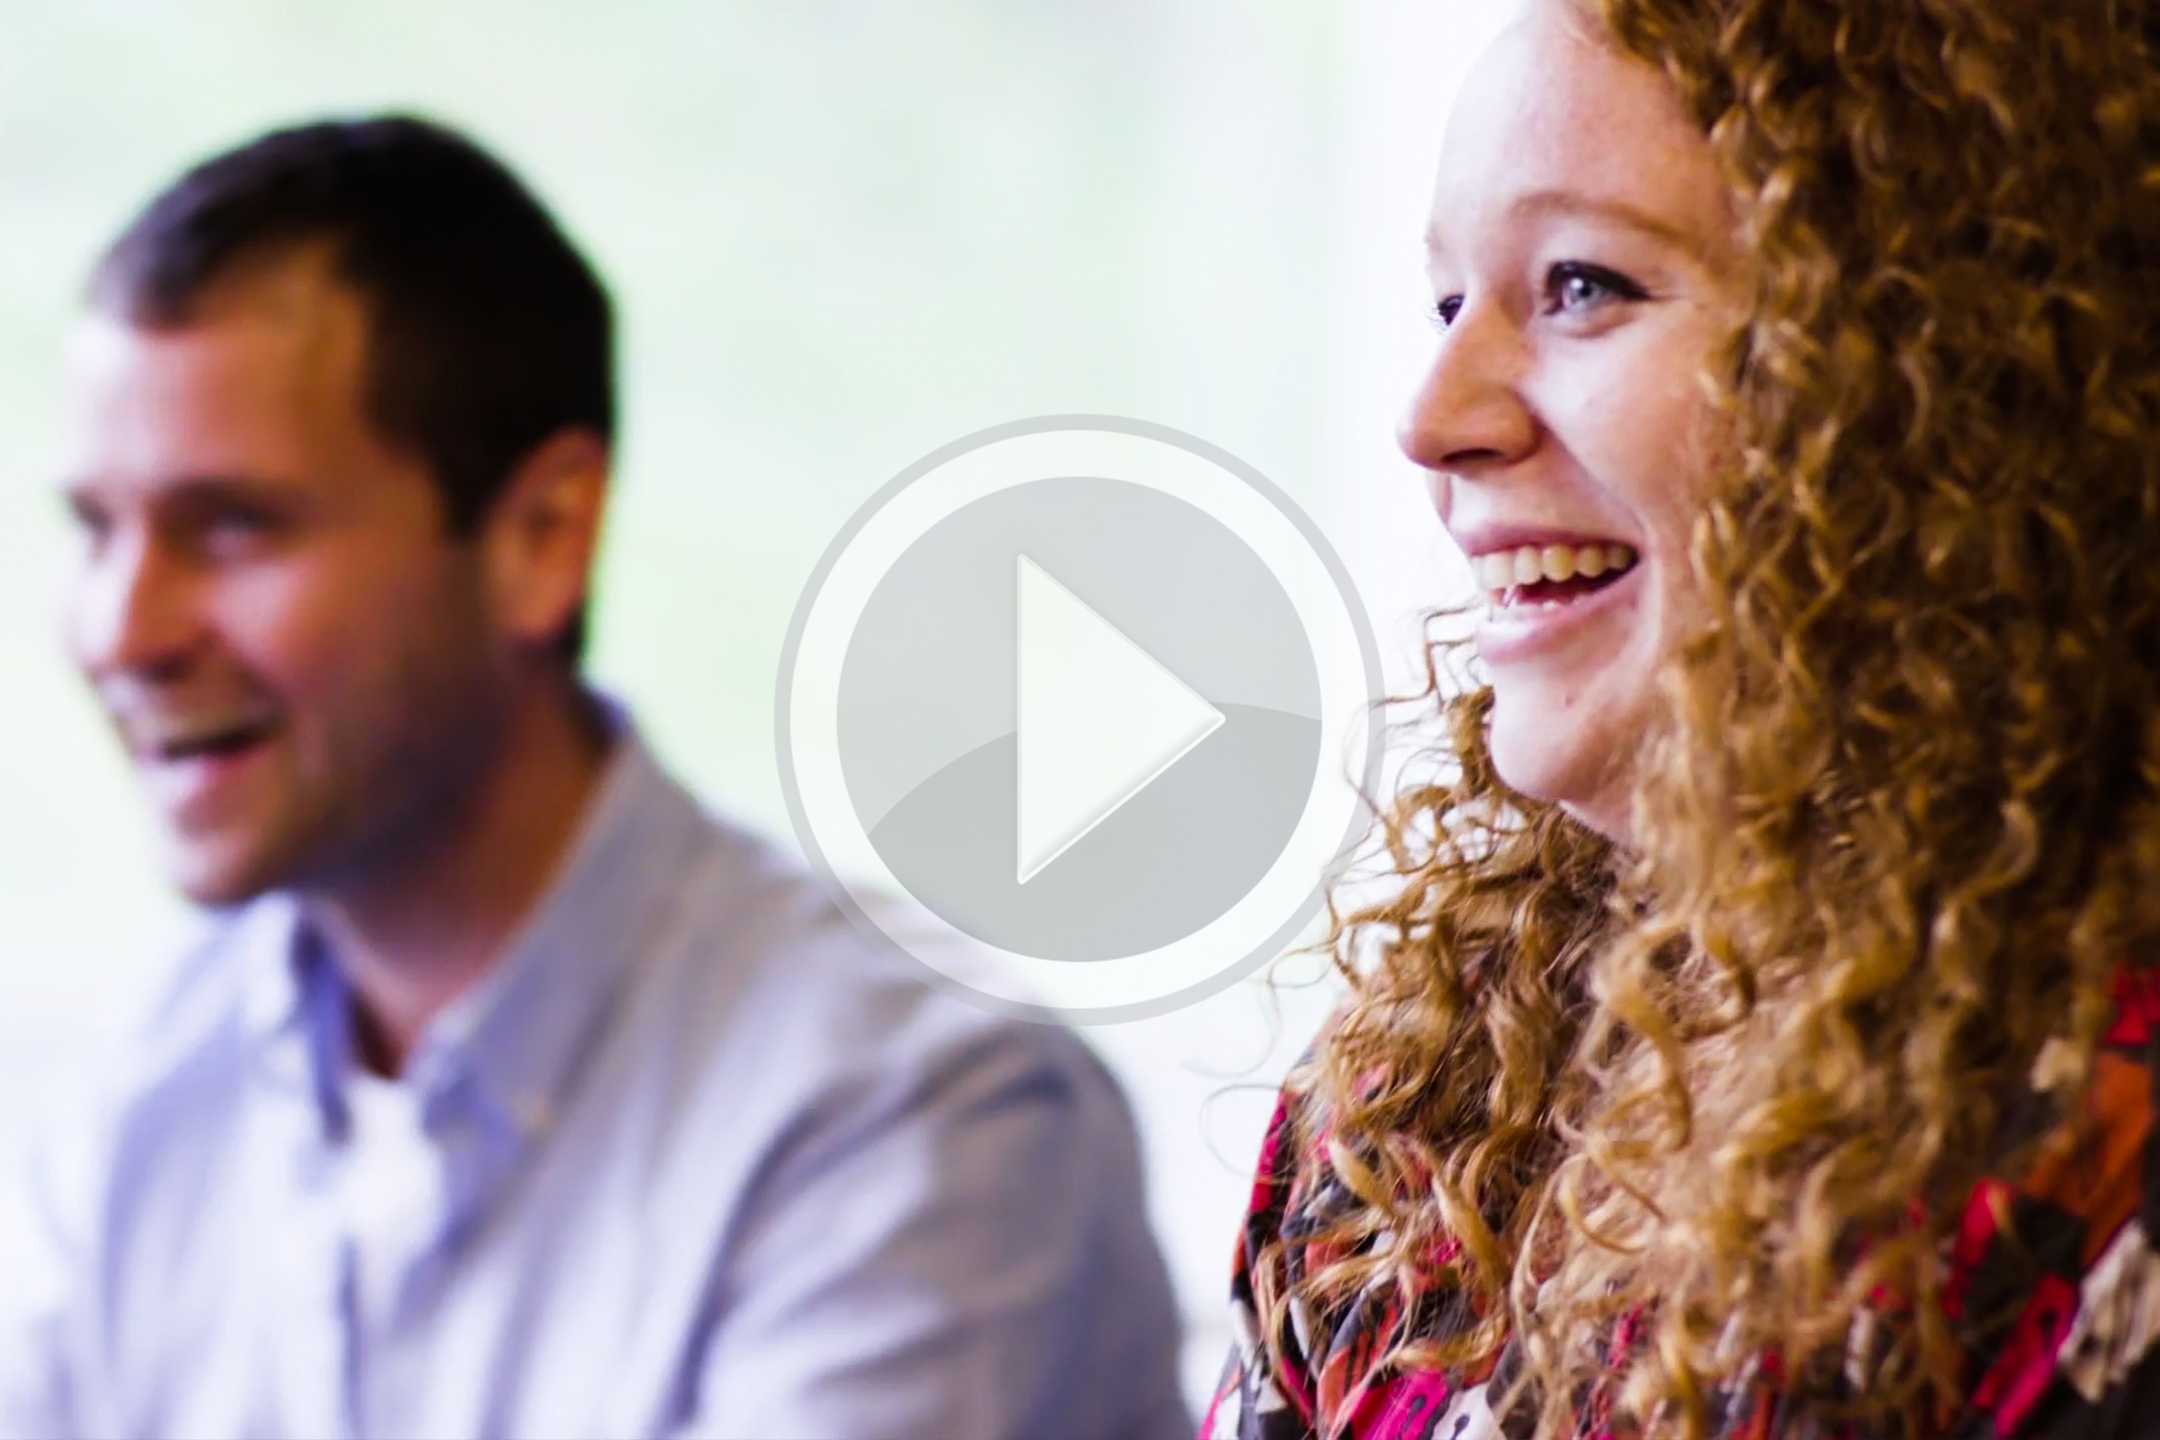 Video: Stand out with a Master's in Big Data